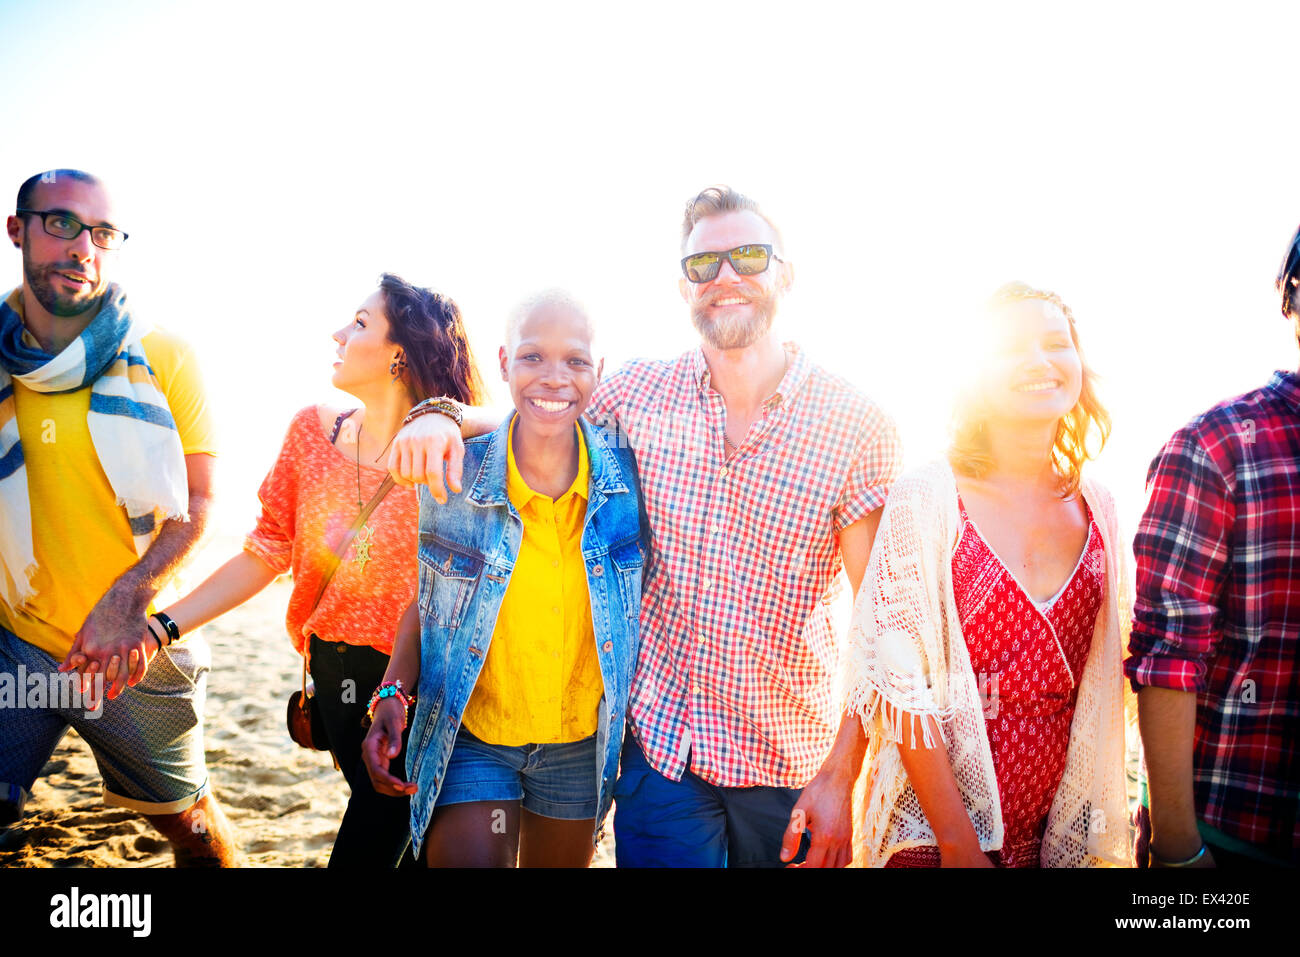 Friendship Bonding Relaxation Summer Beach Happiness Concept - Stock Image